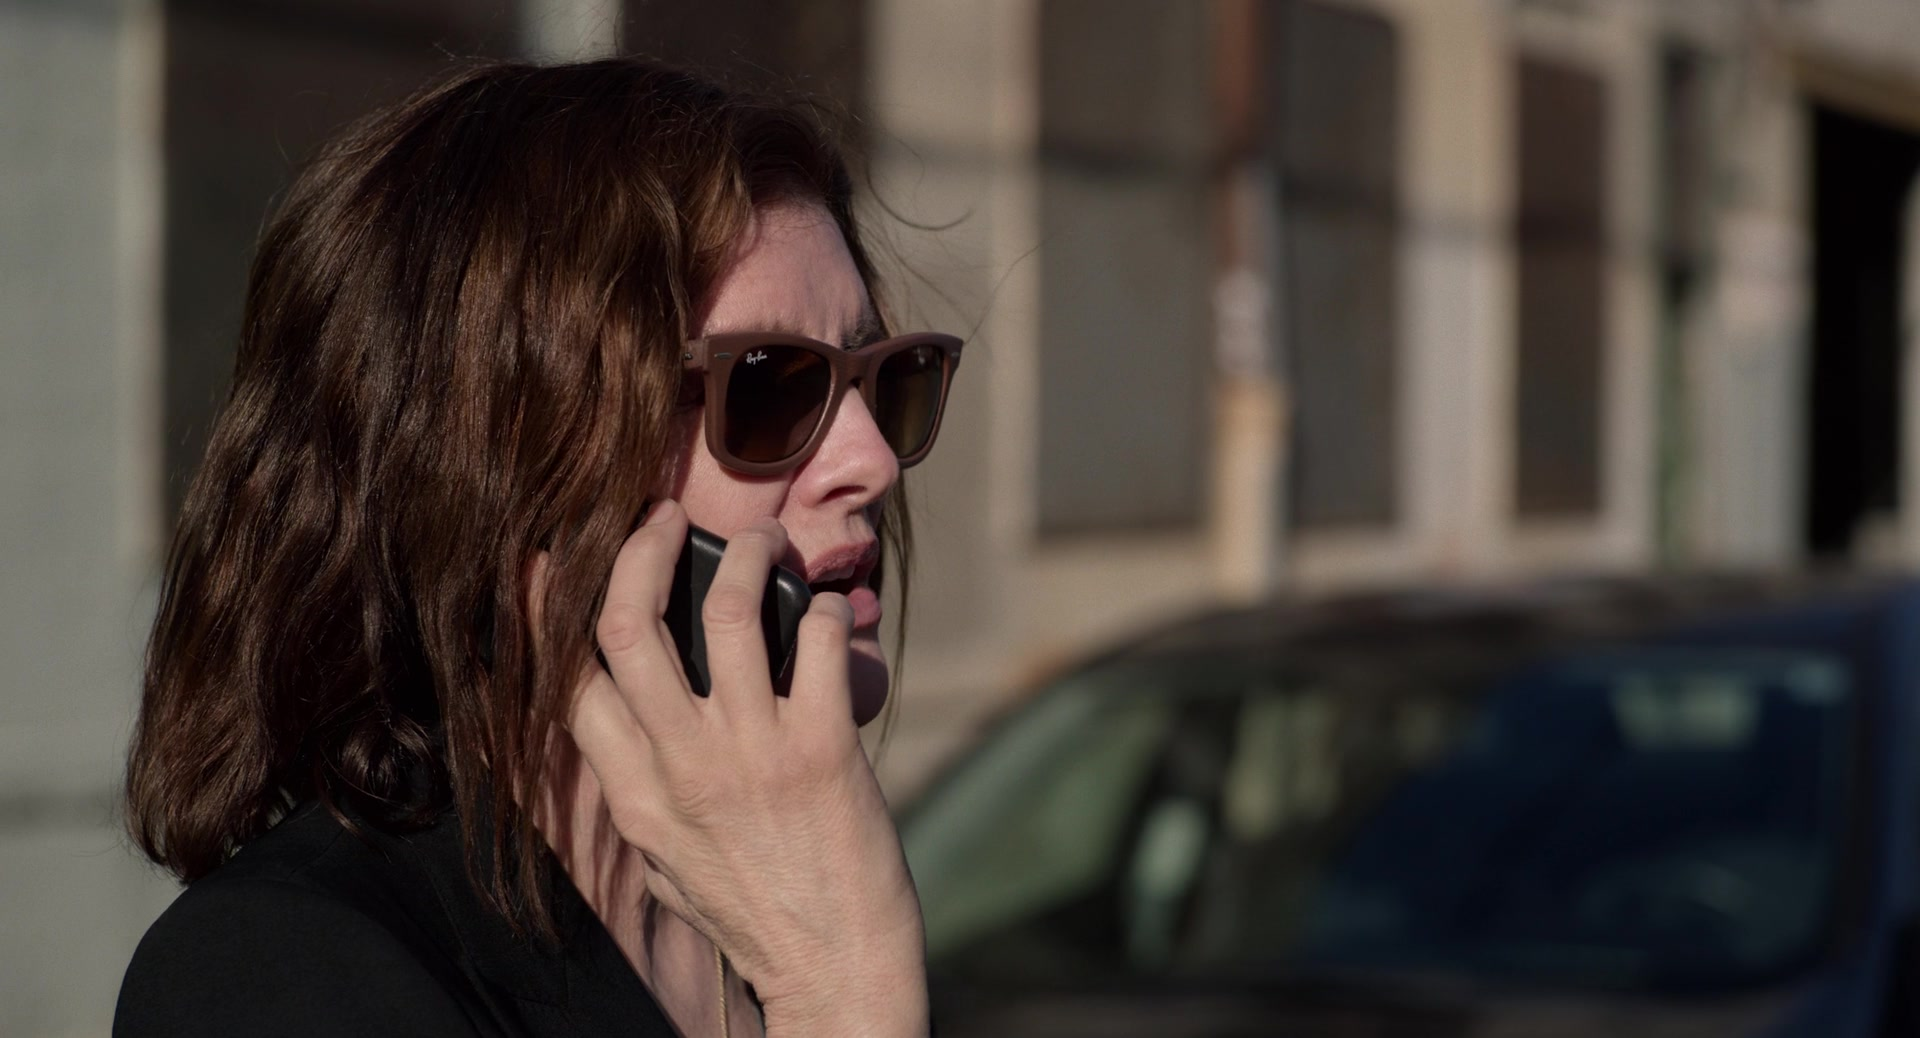 aaea5f5213bfb Ray-Ban Women s Sunglasses With Brown Frame Worn by Rene Russo in Velvet  Buzzsaw (